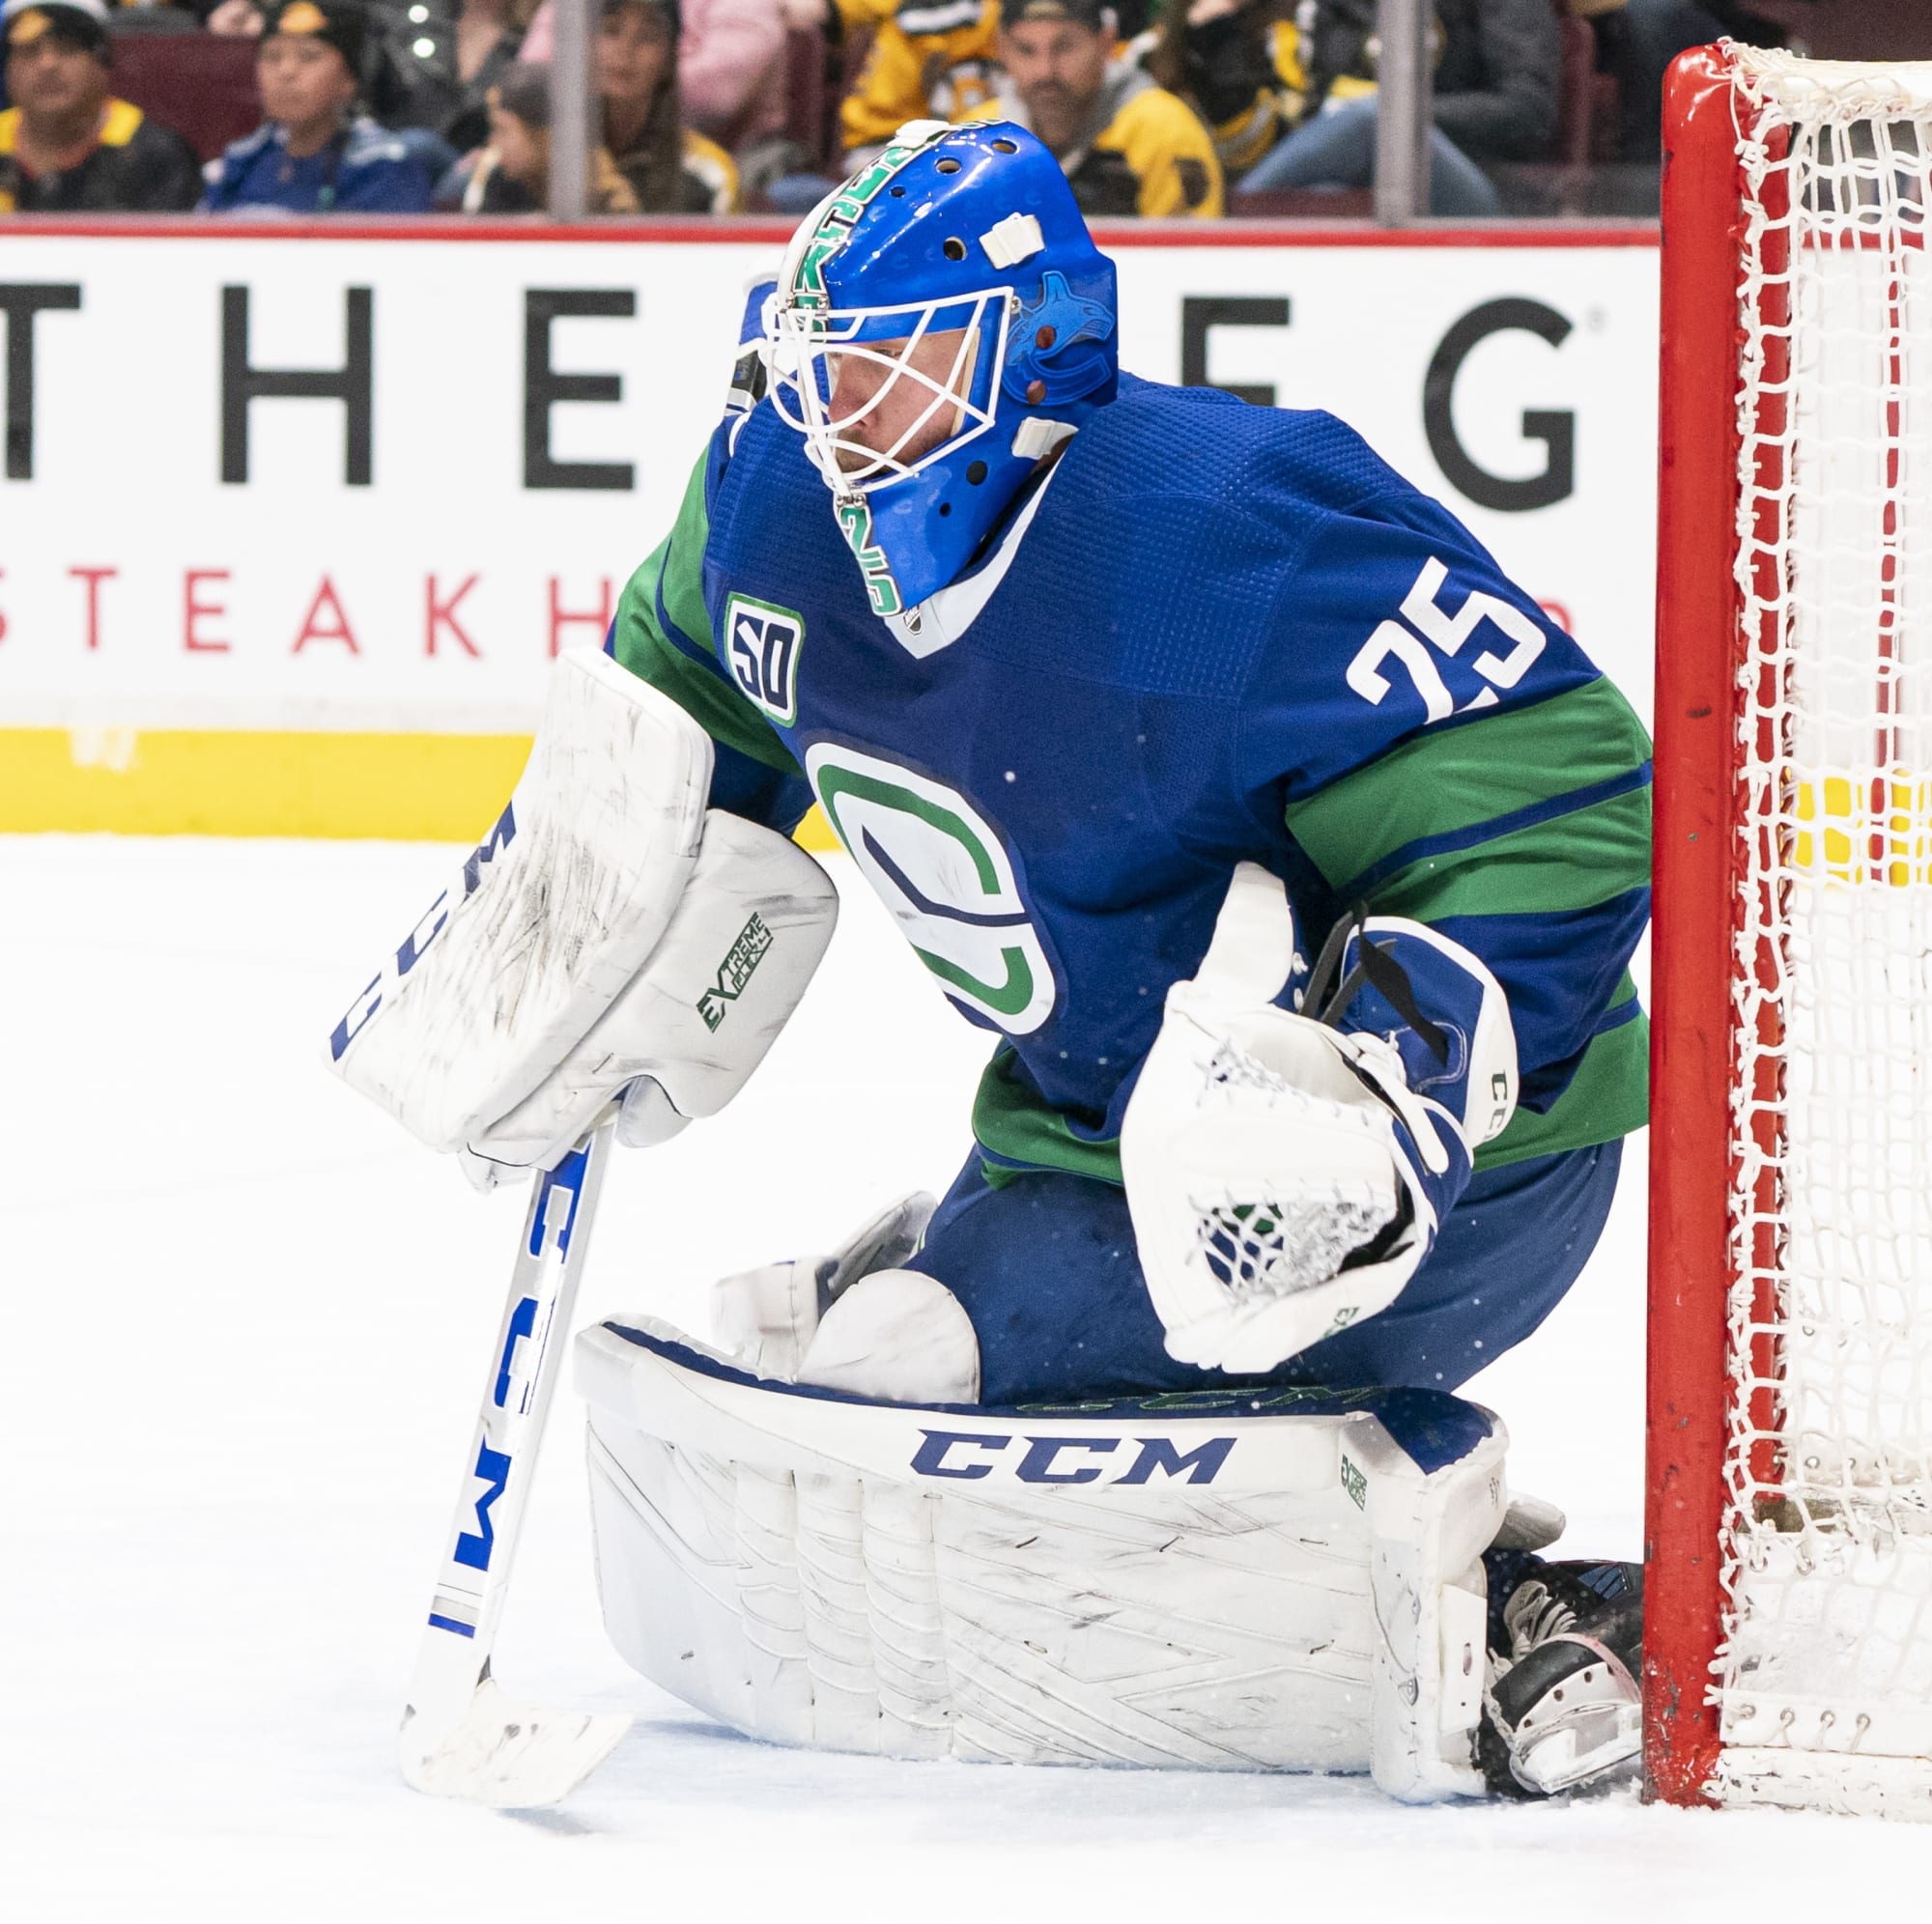 Canucks 2020 off-season trade candidates: Jacob Markstrom